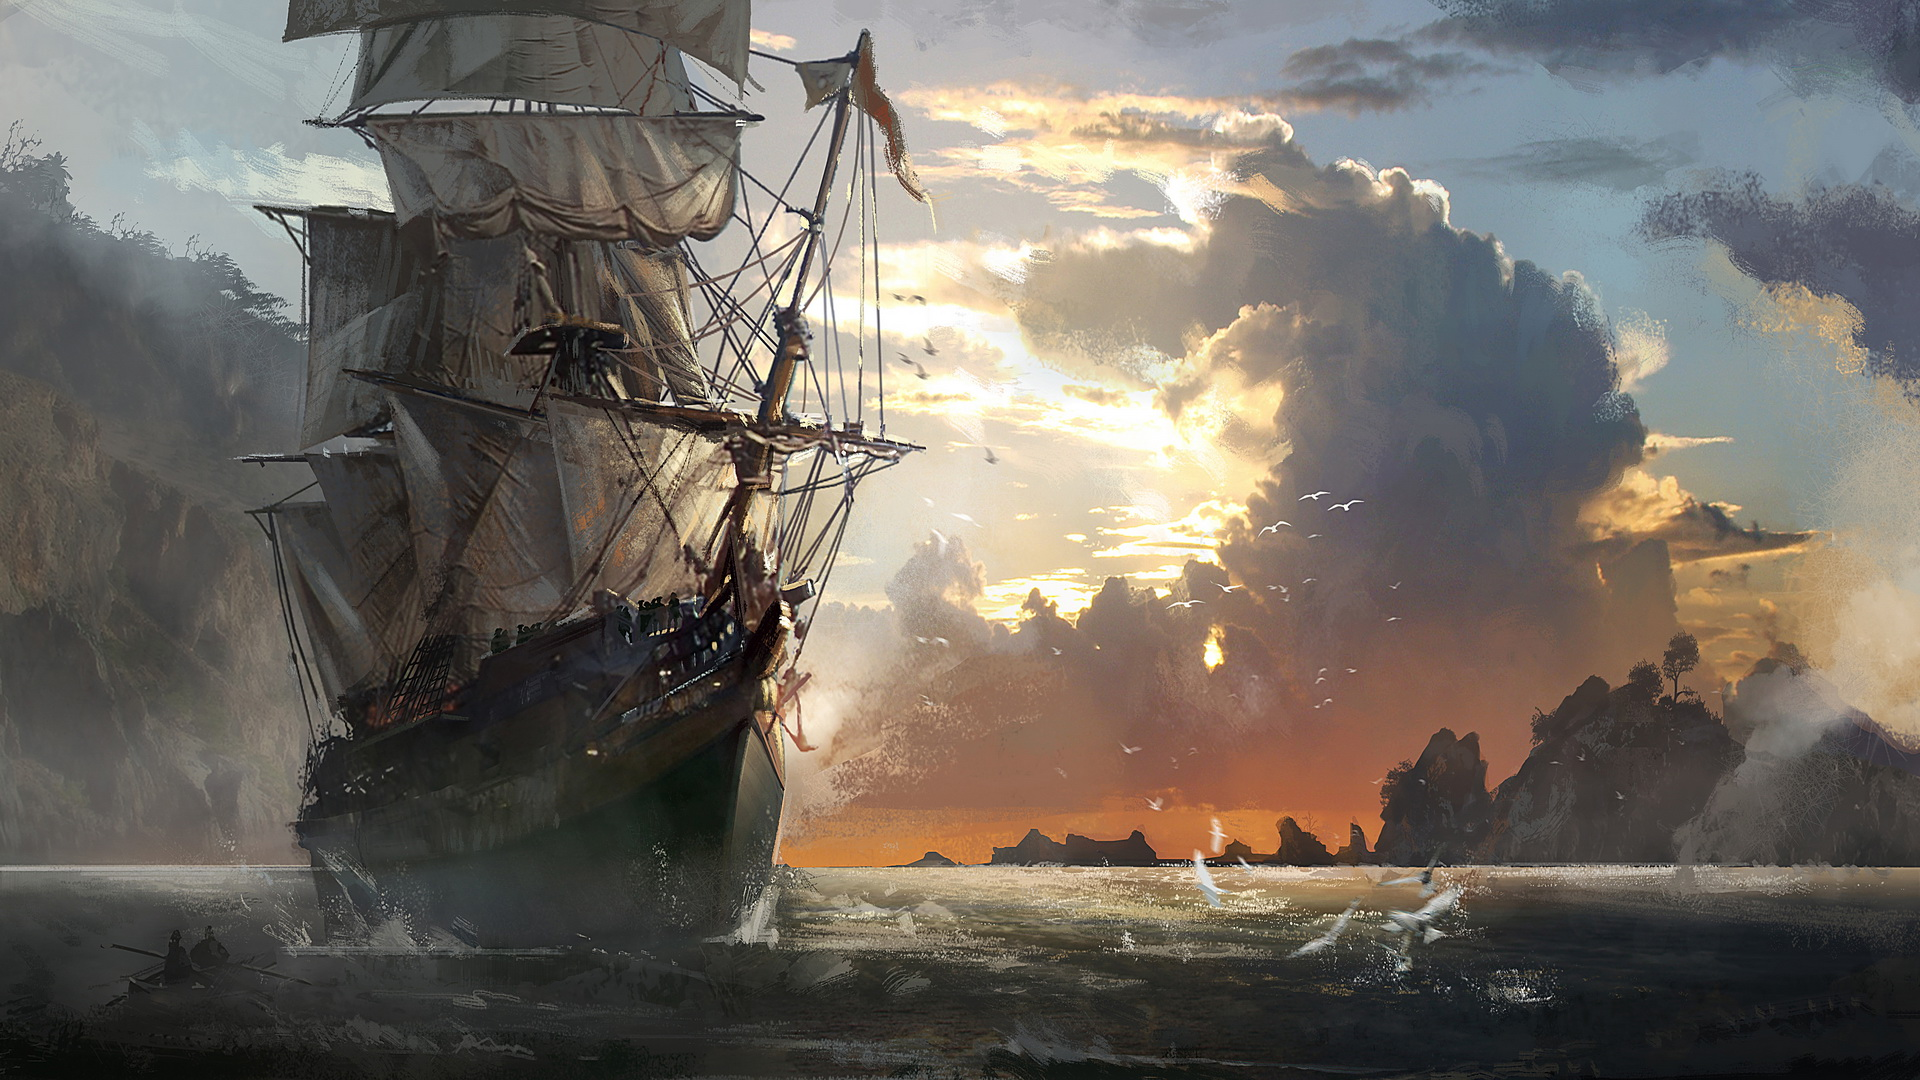 pirate ship computer wallpapers - photo #28